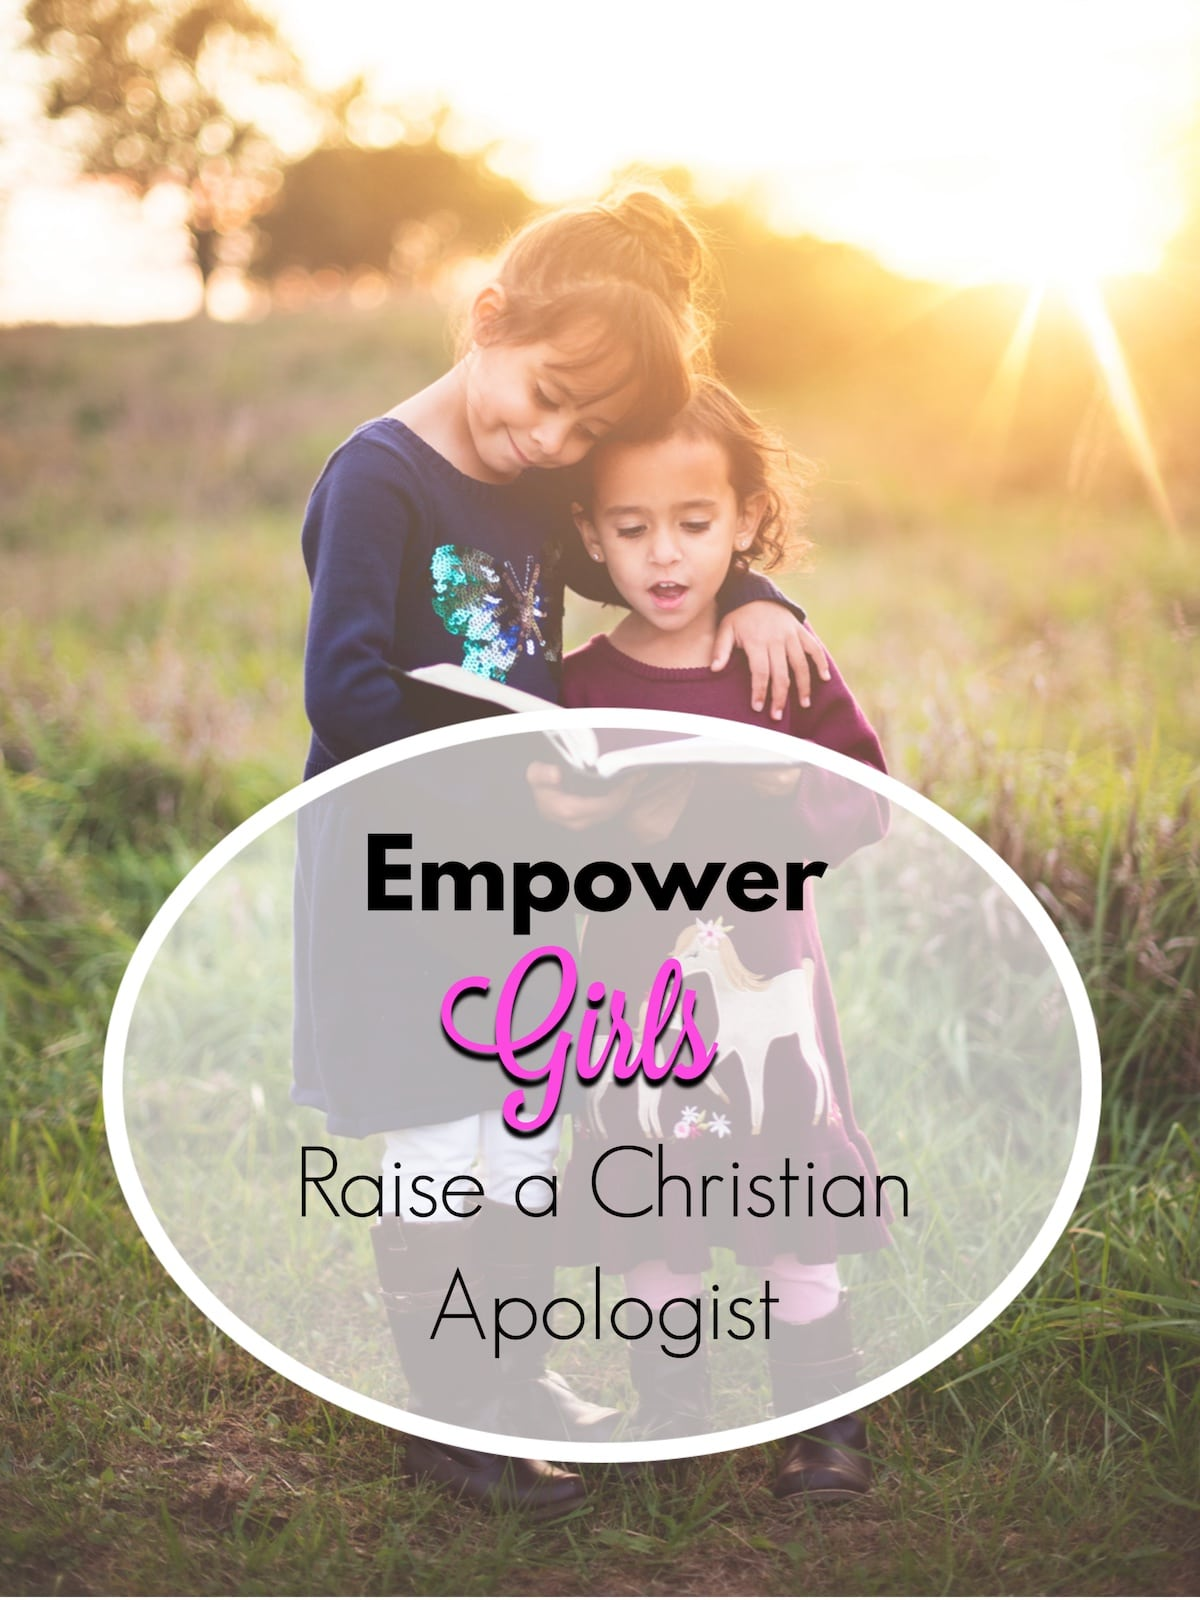 Empower girls, raise a Christian Apologisy